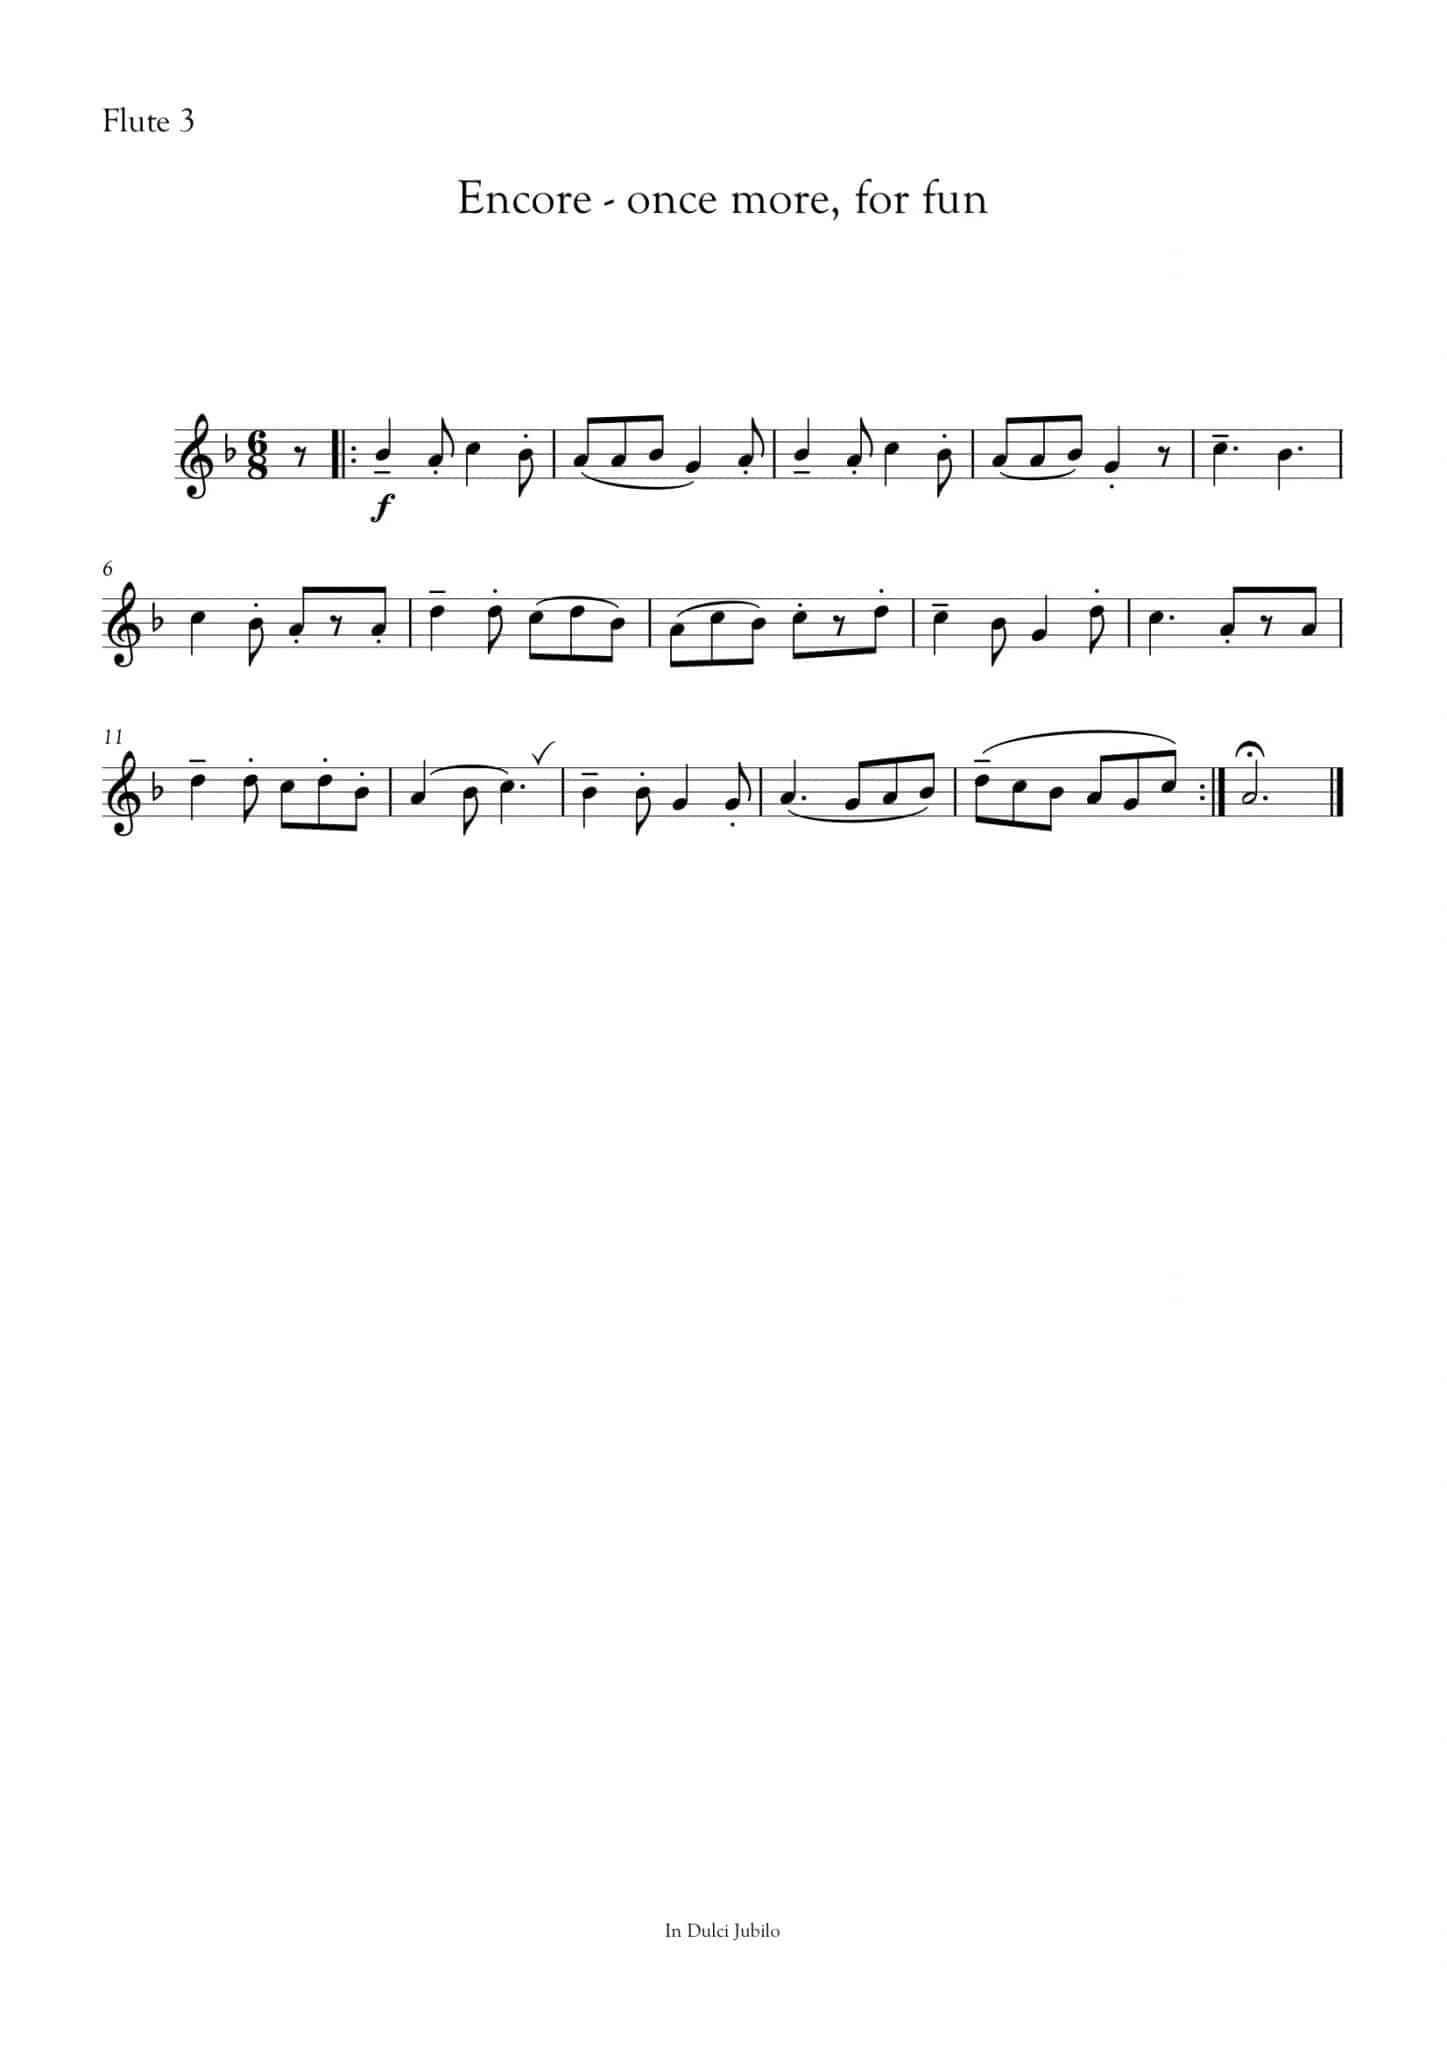 Simply Flute - In Dulci Jubilo - all parts_title sheet_no words copy_Part24